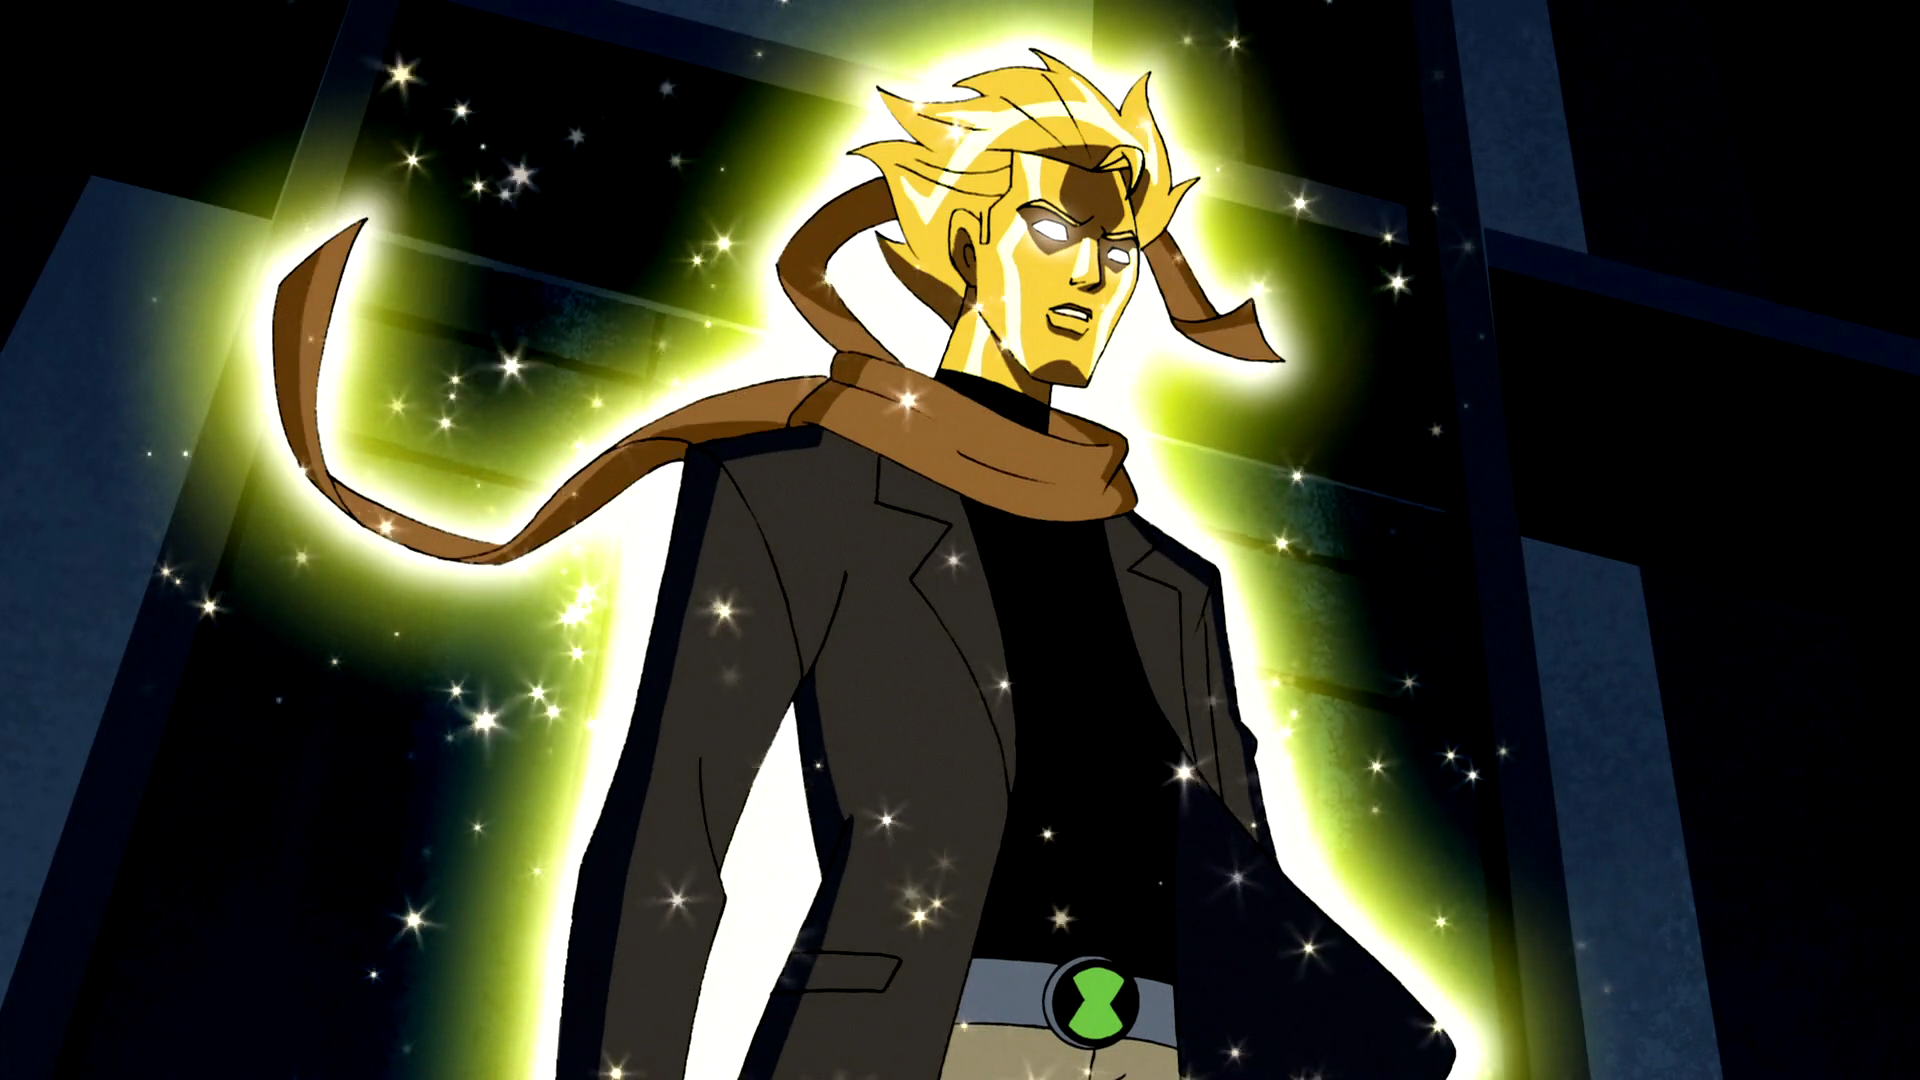 All That Glitters Ben 10 Wiki Fandom